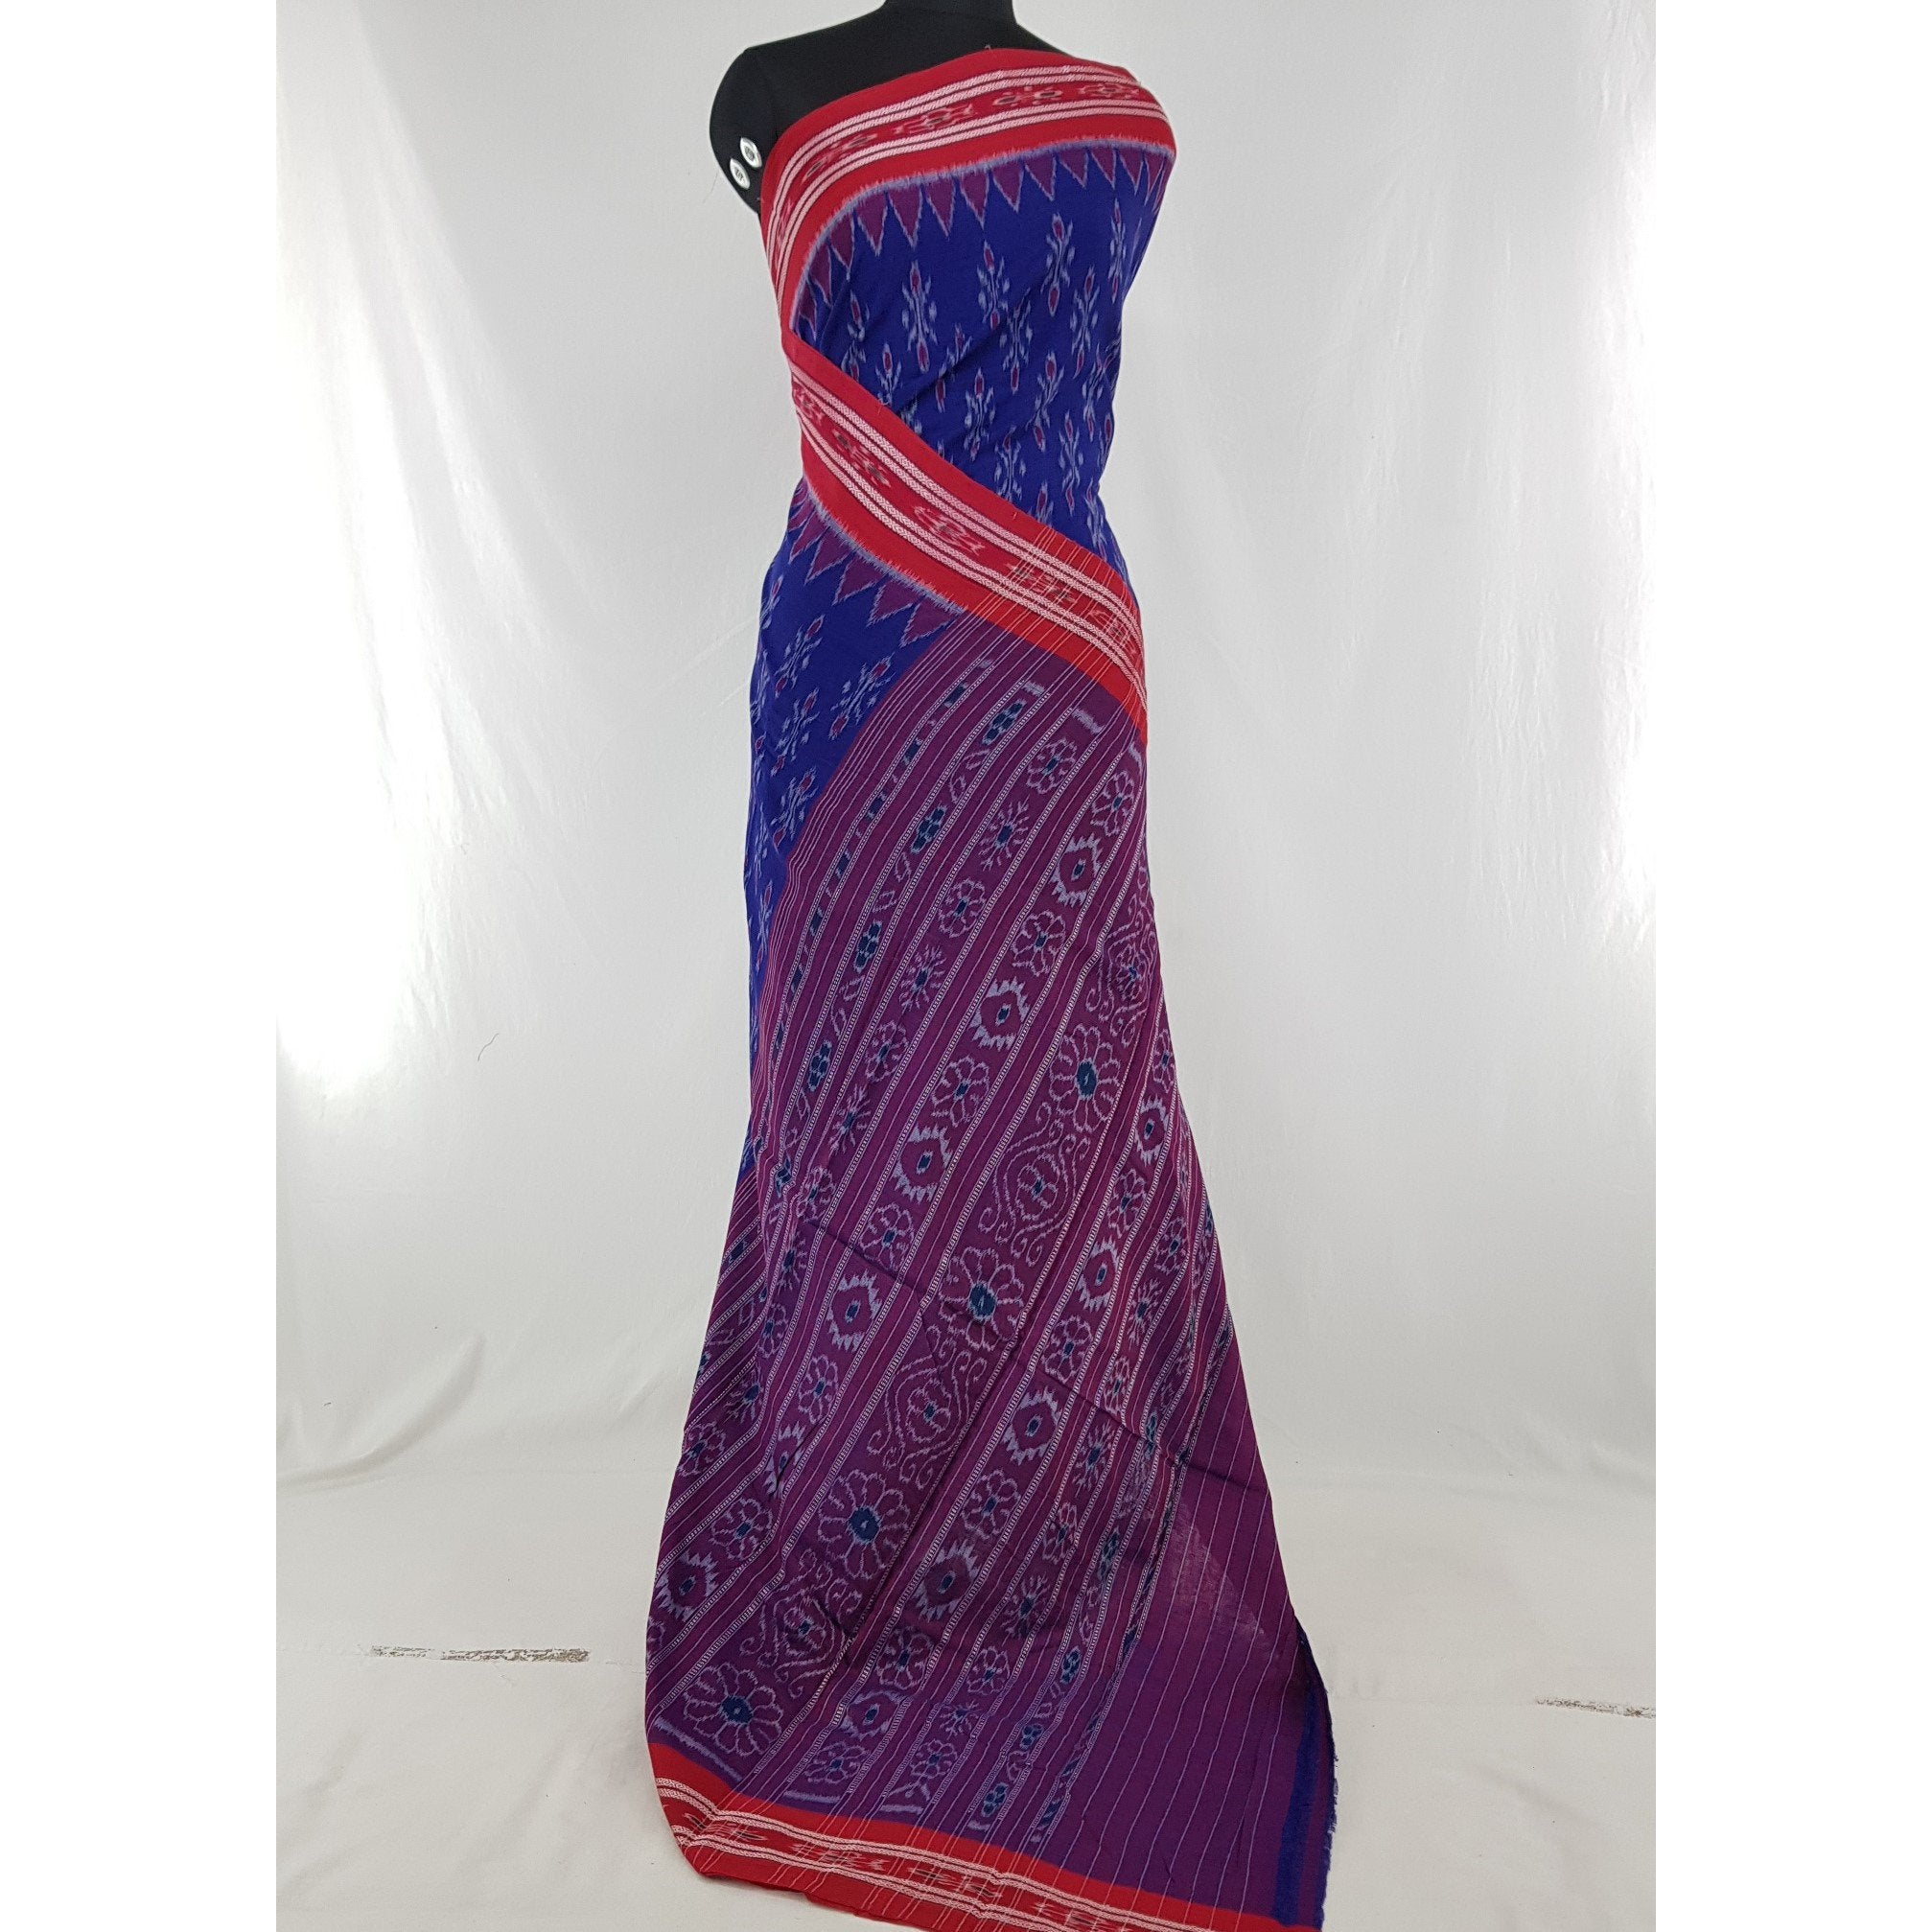 Handloom Sambalpuri ikat cotton saree with blouse - Vinshika